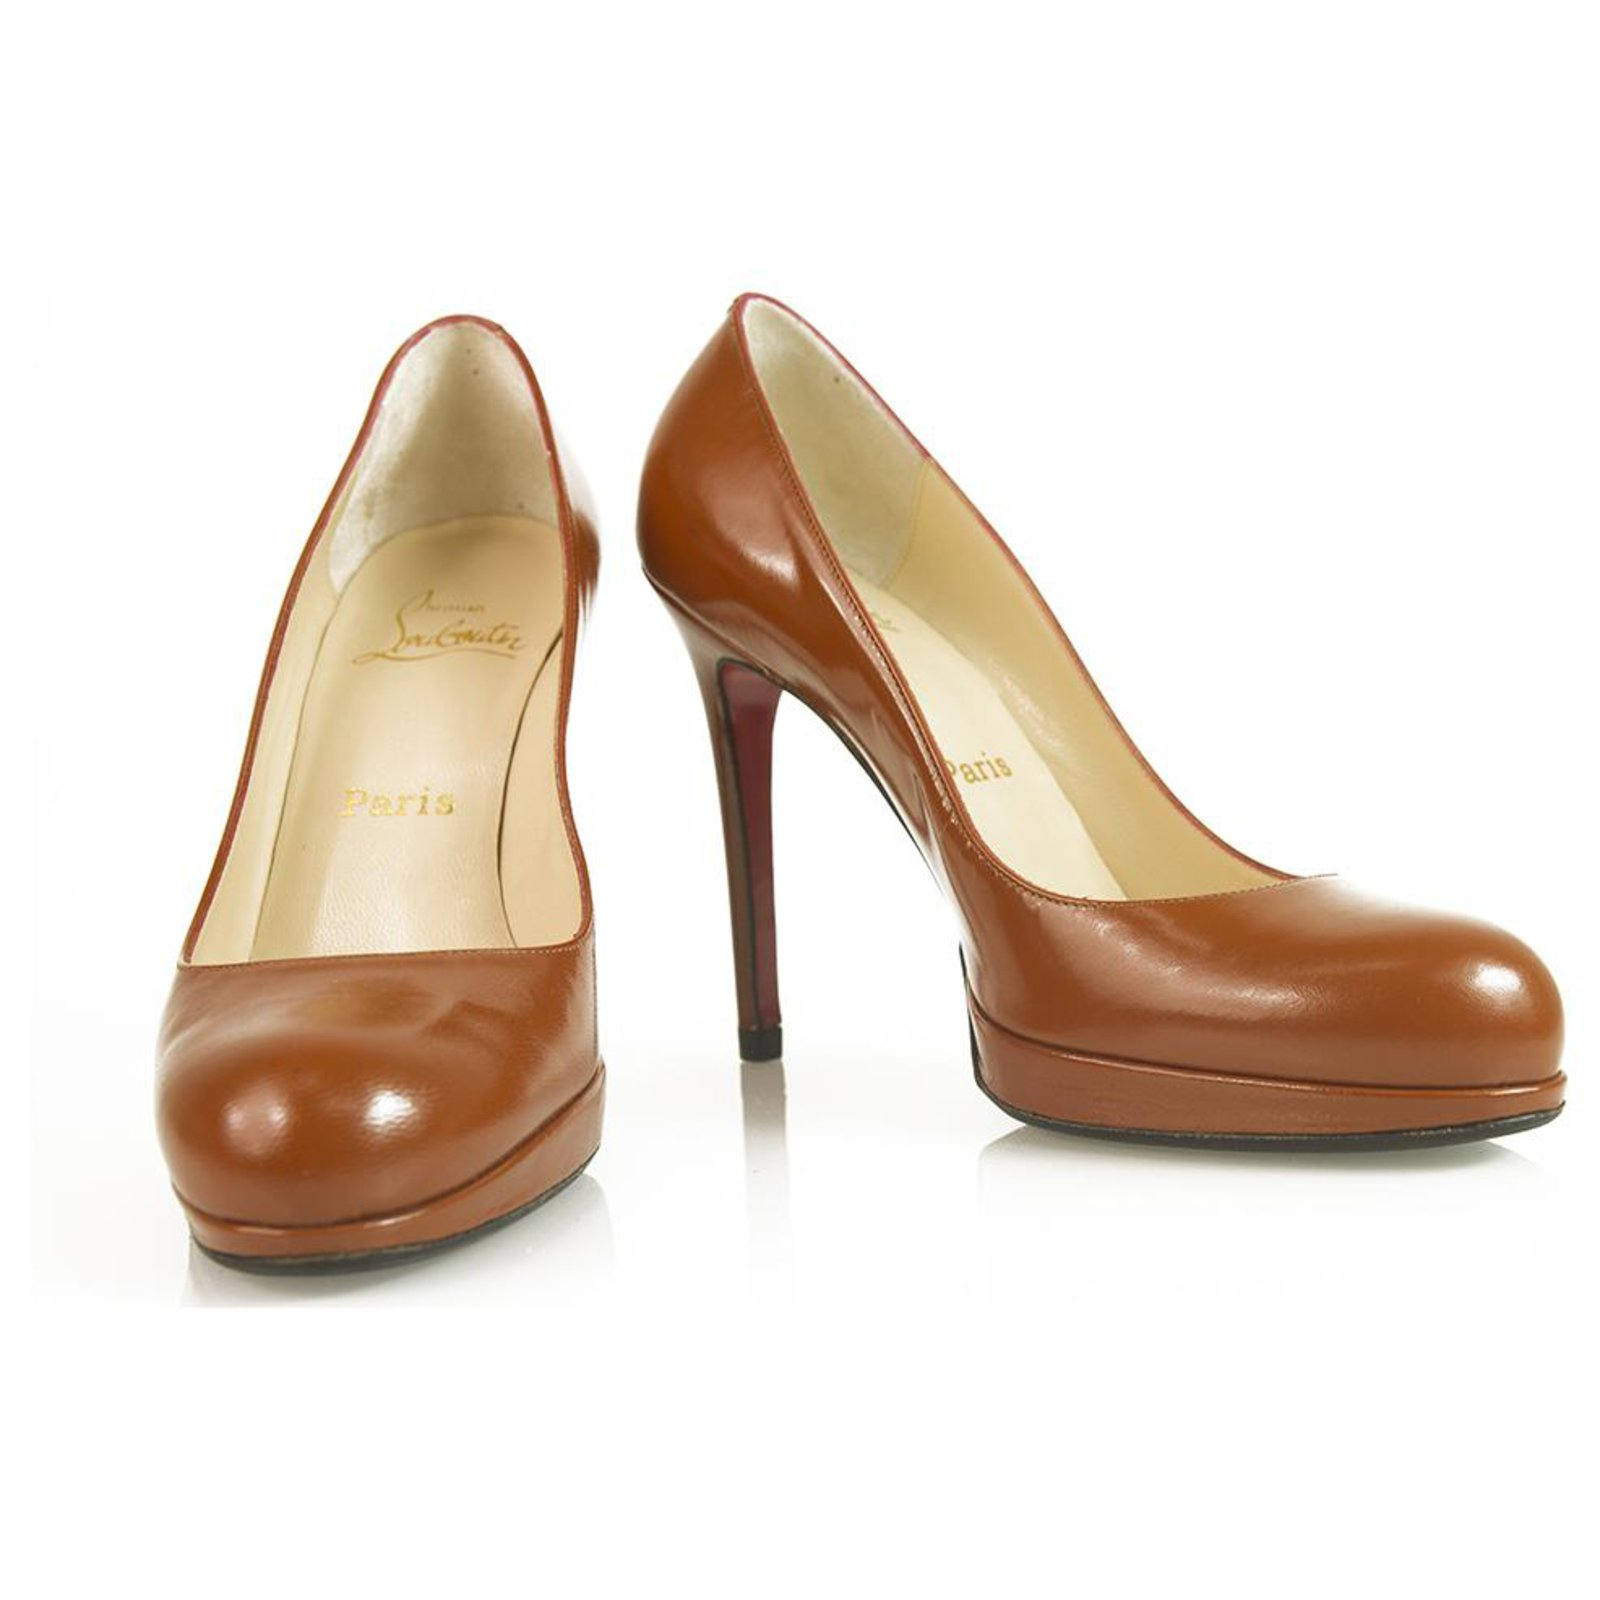 reputable site 3e48a a838c Christian Louboutin Classic Brown leather round toe platform pumps sz 37